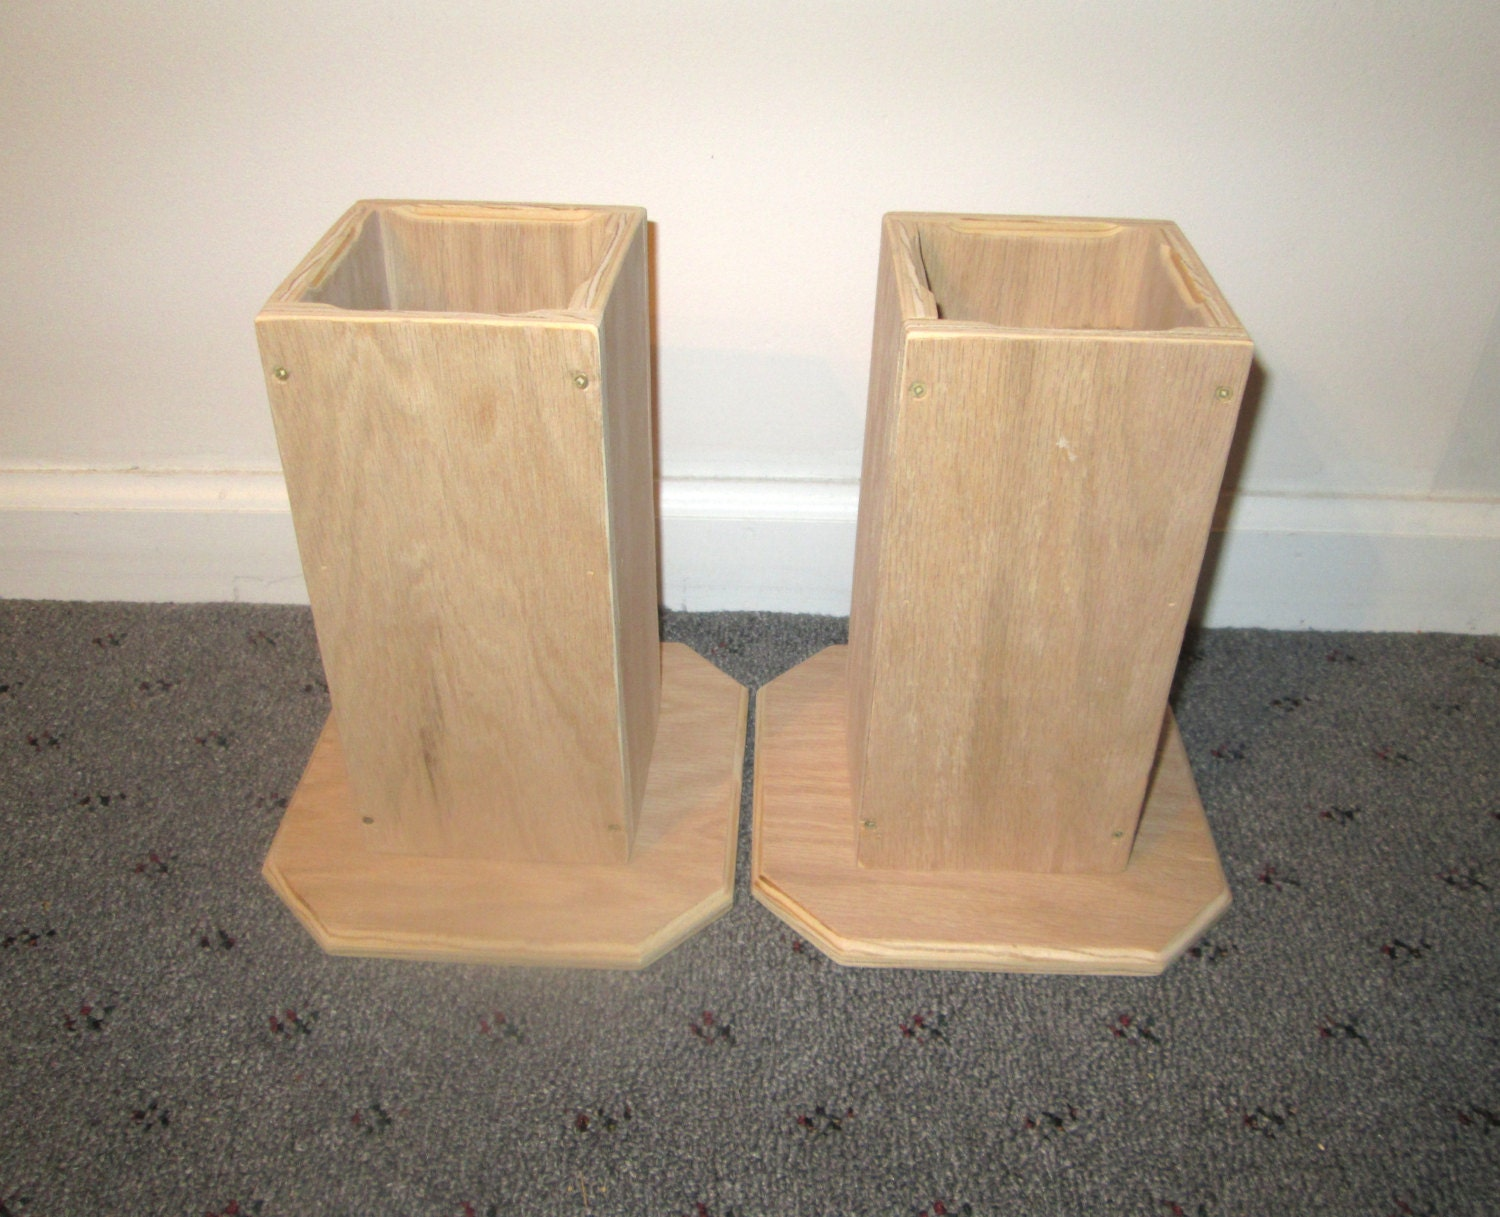 Furniture risers 8 inch all wood construction unfinished for Furniture risers